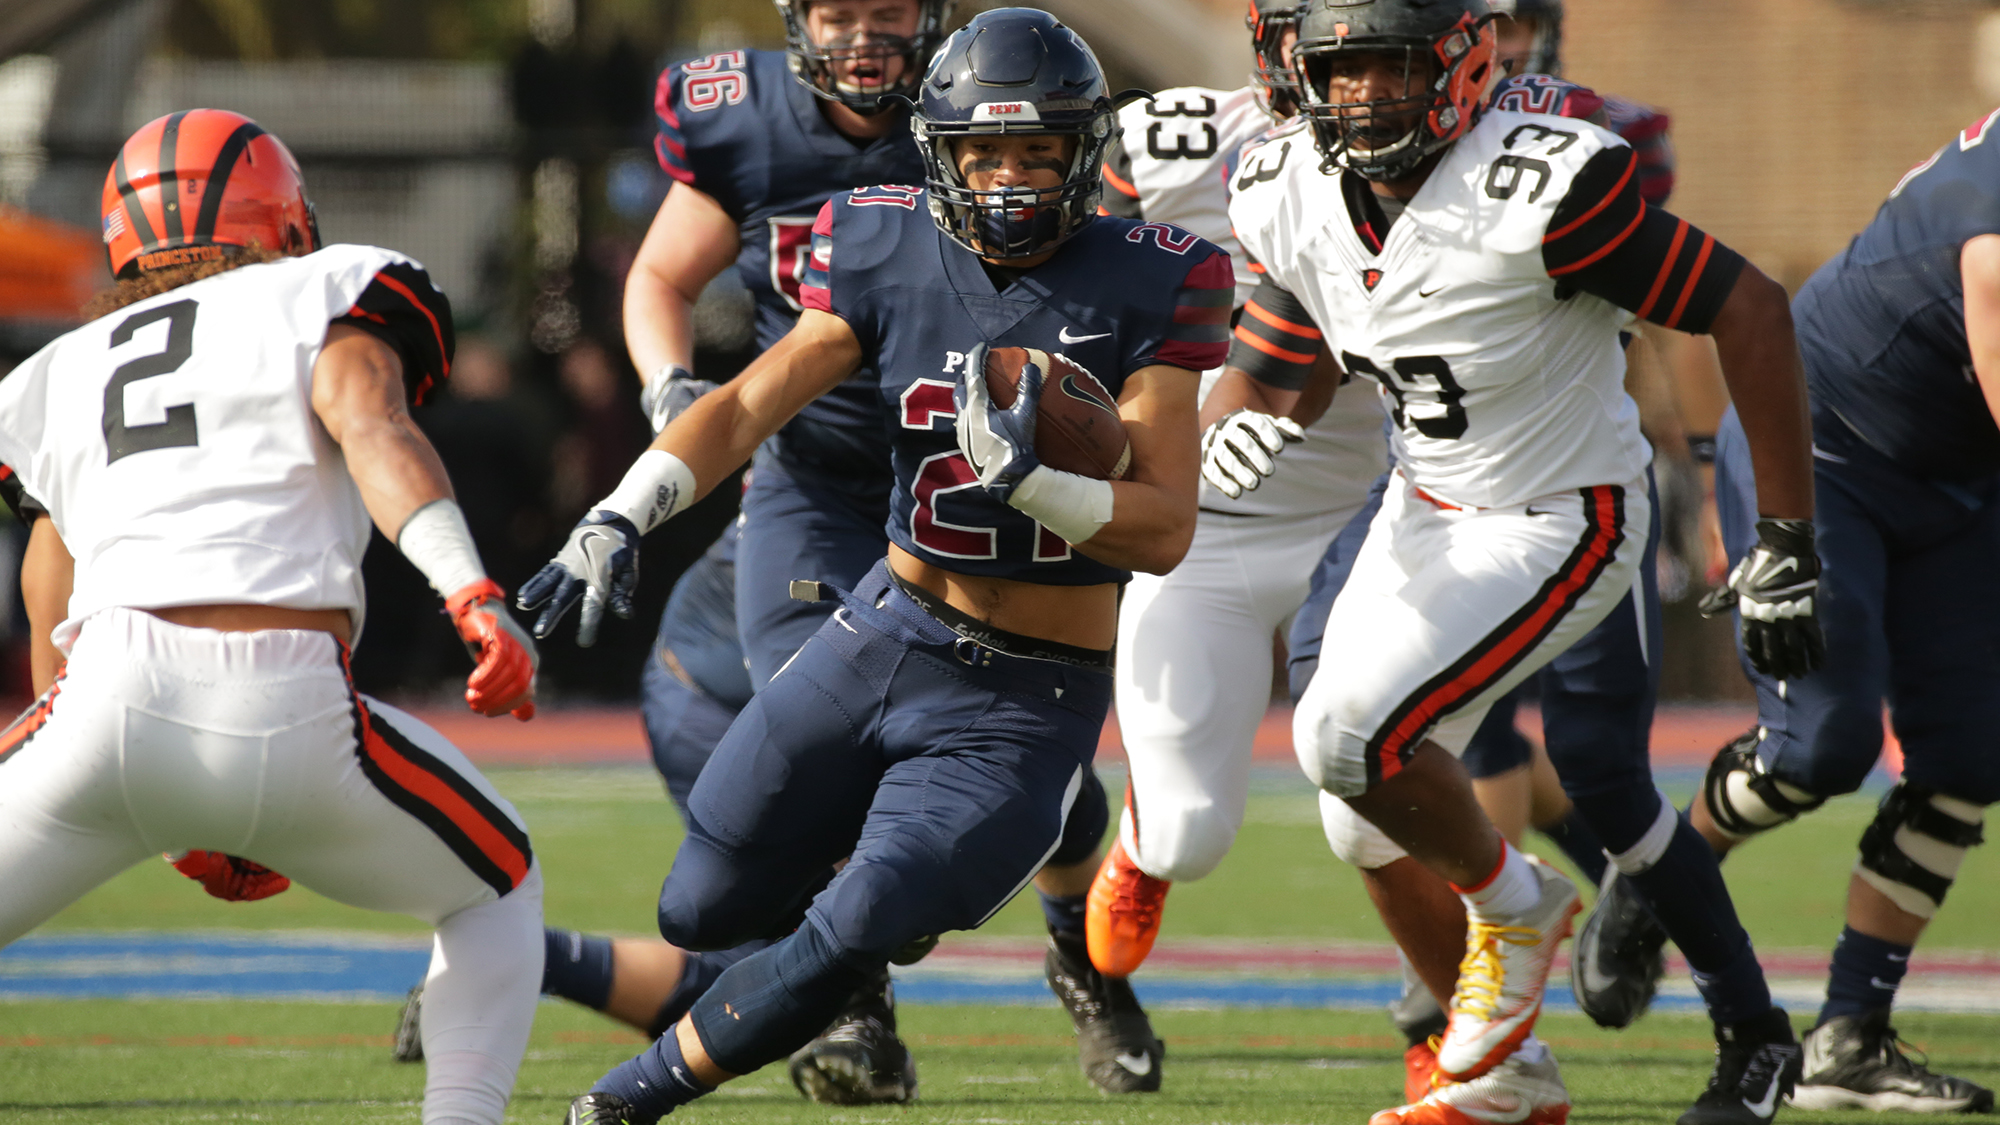 Abe Willows - RB, University of Pennsylvania